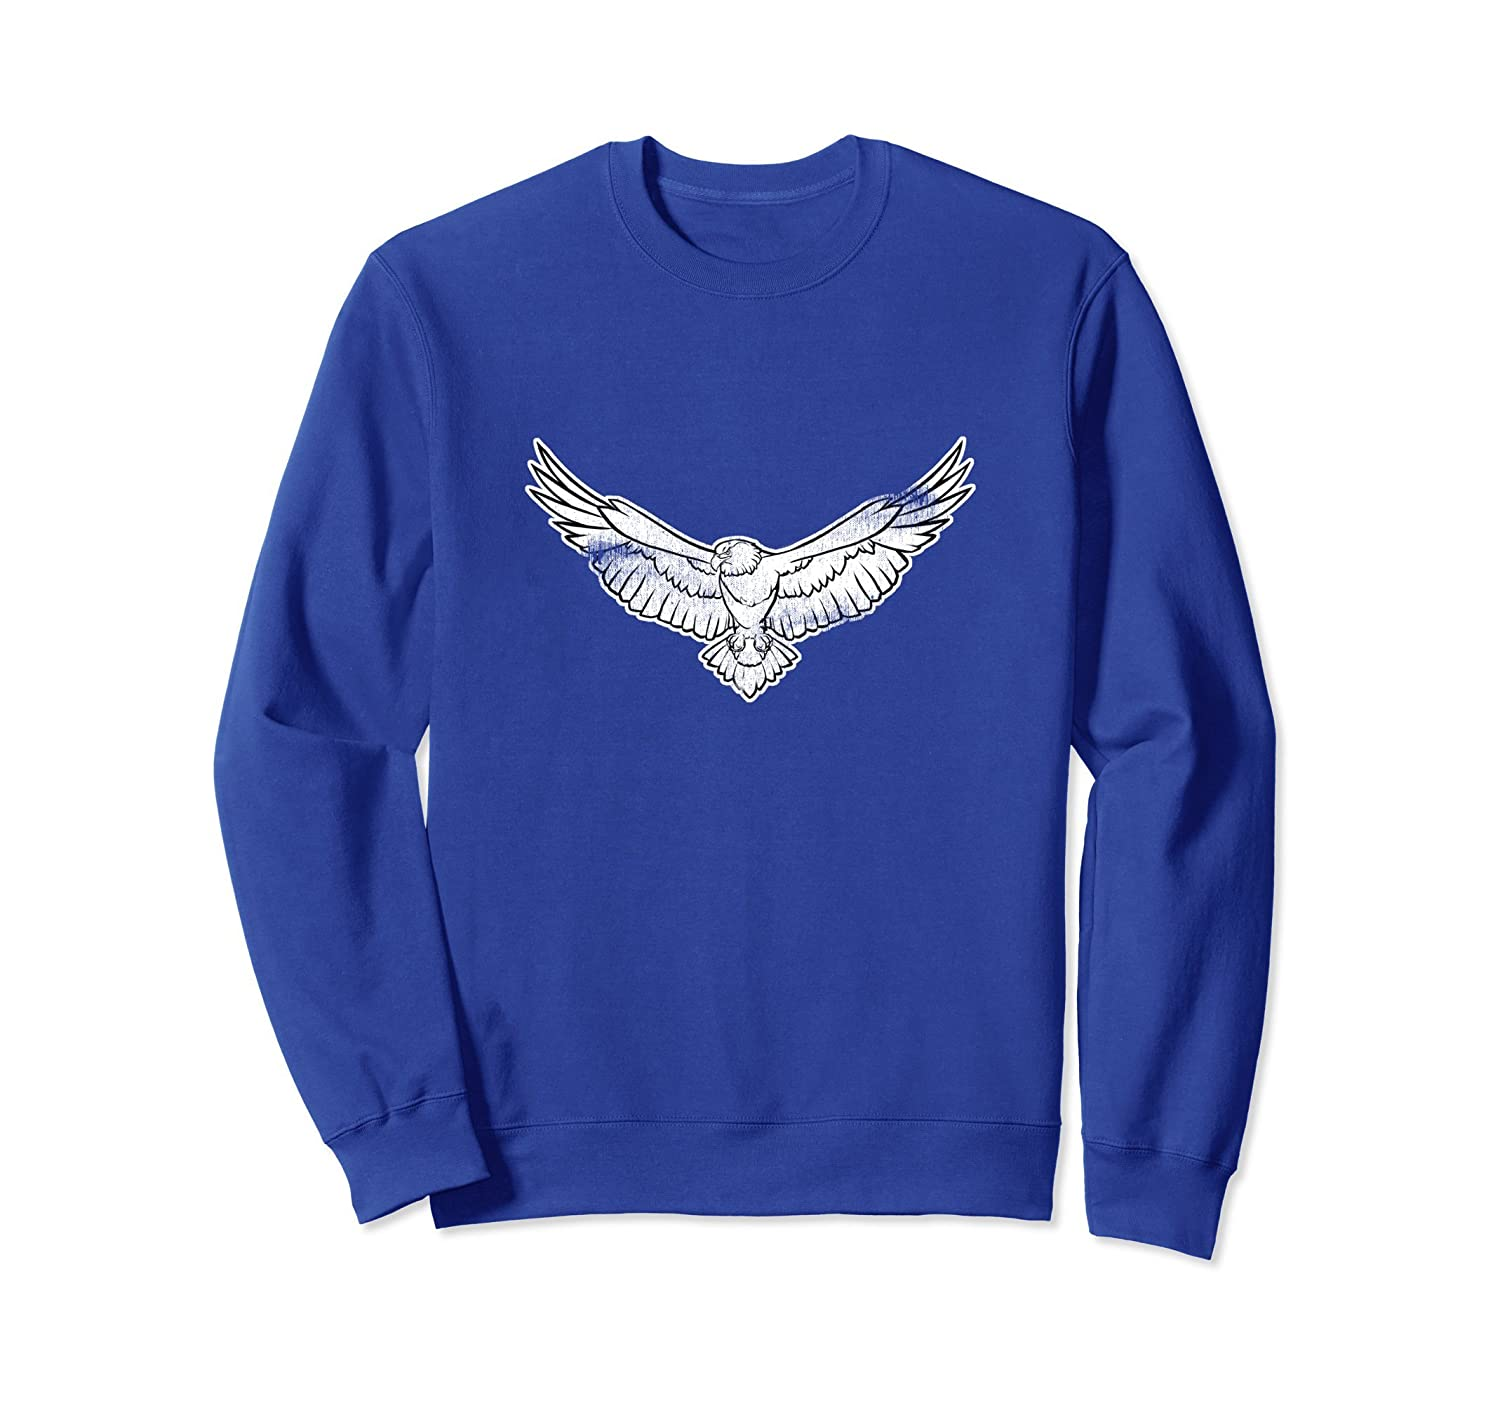 Eagle Love Eagles Patriotic Men Women Sweatshirt American-ah my shirt one gift